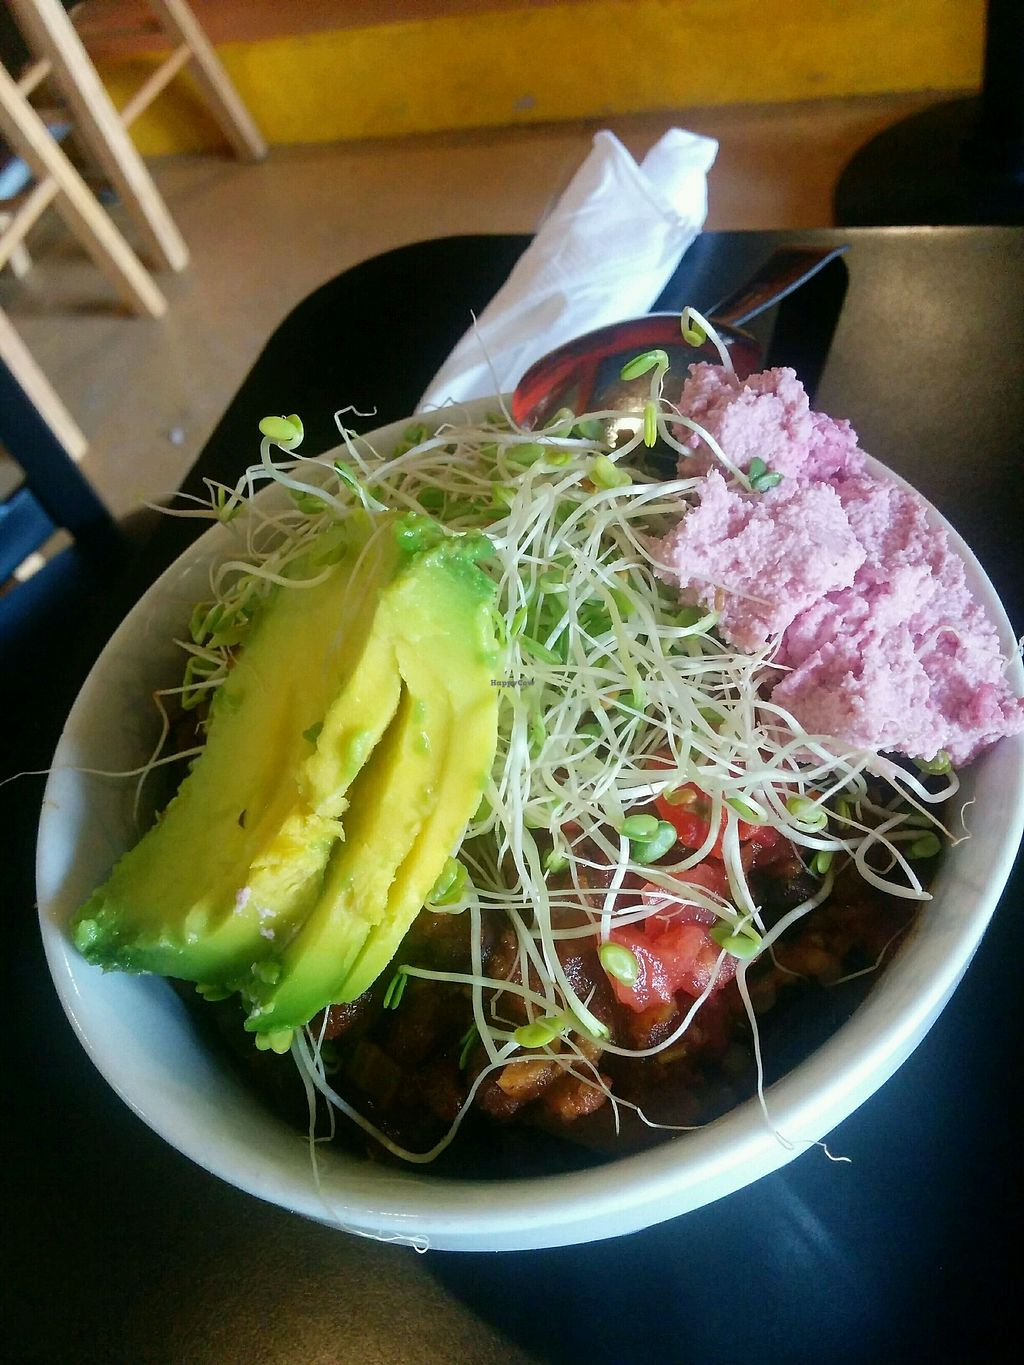 """Photo of Conscious Culture Cafe  by <a href=""""/members/profile/alexandra_vegan"""">alexandra_vegan</a> <br/>Vegan chilli bowl with extra cashew cheese and avocado <br/> October 2, 2017  - <a href='/contact/abuse/image/48712/310894'>Report</a>"""